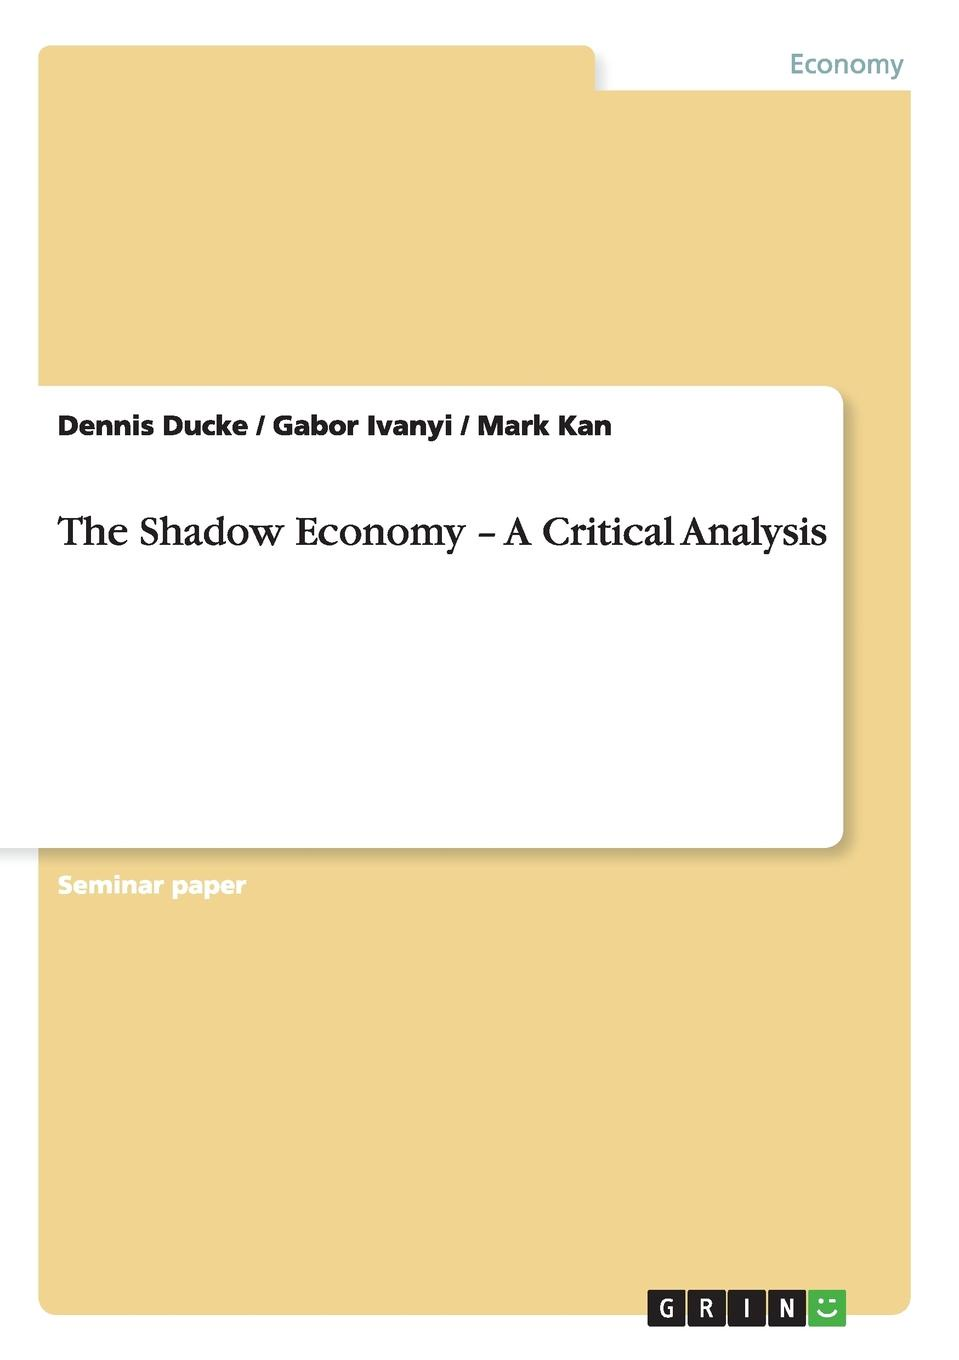 Dennis Ducke, Gabor Ivanyi, Mark Kan The Shadow Economy - A Critical Analysis hortense and the shadow